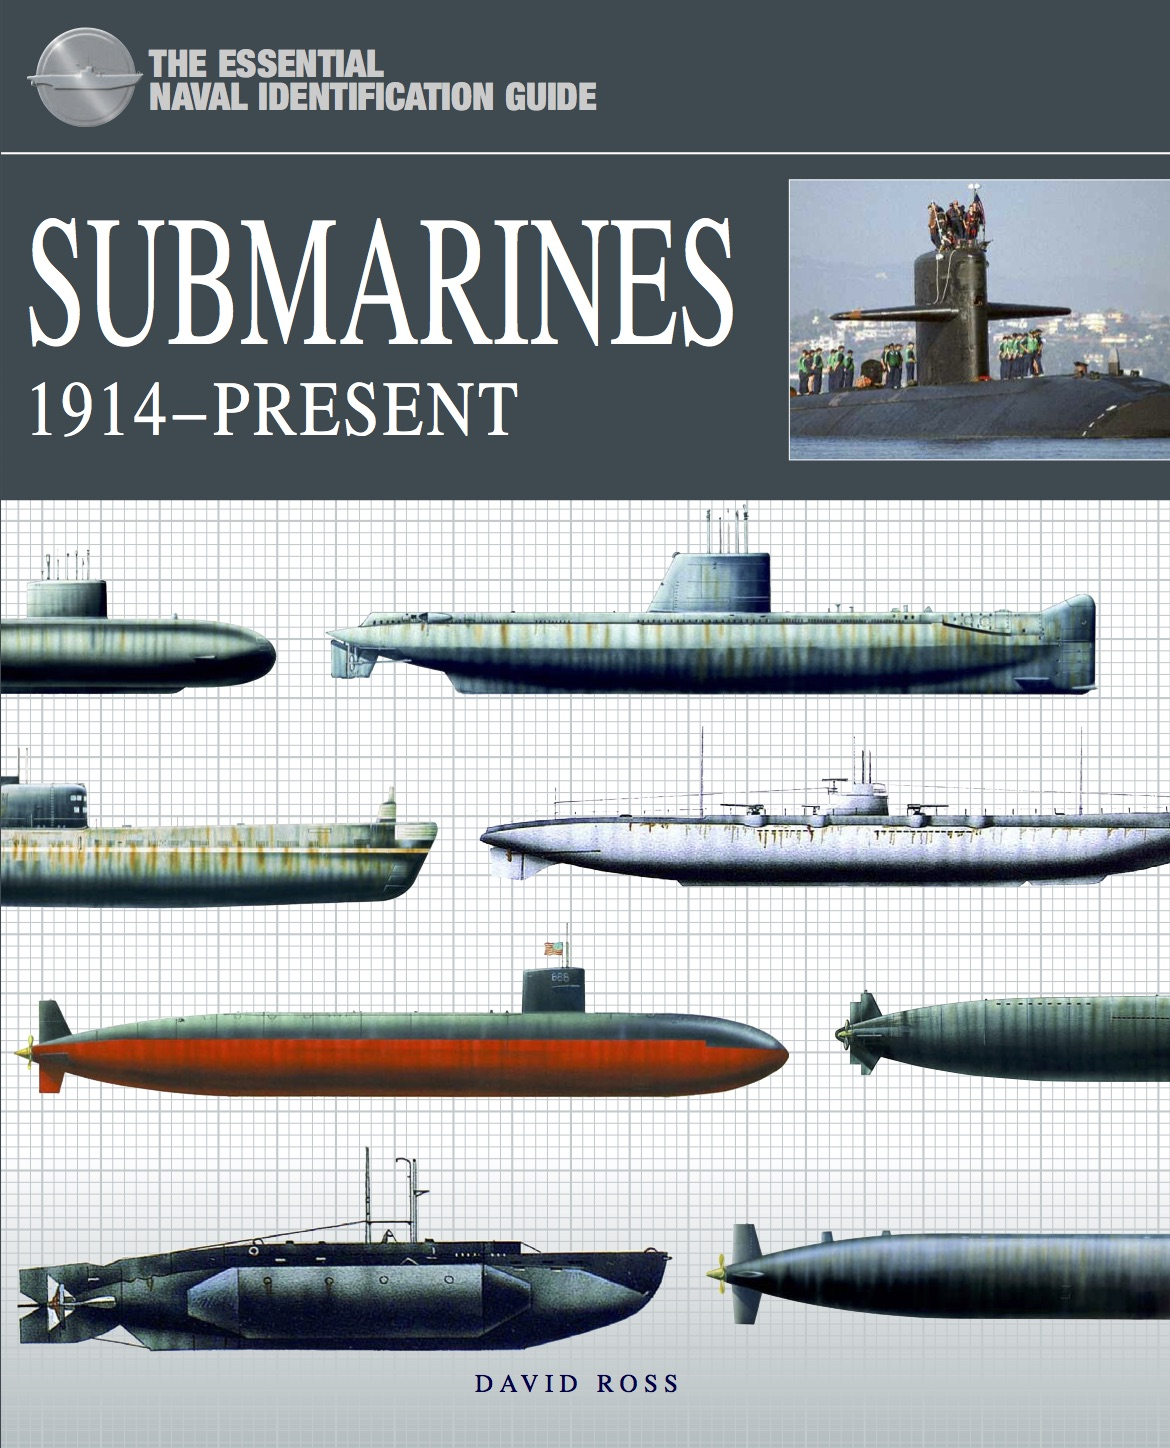 Submarines 1914-Present: The Essential Naval Identification Guide